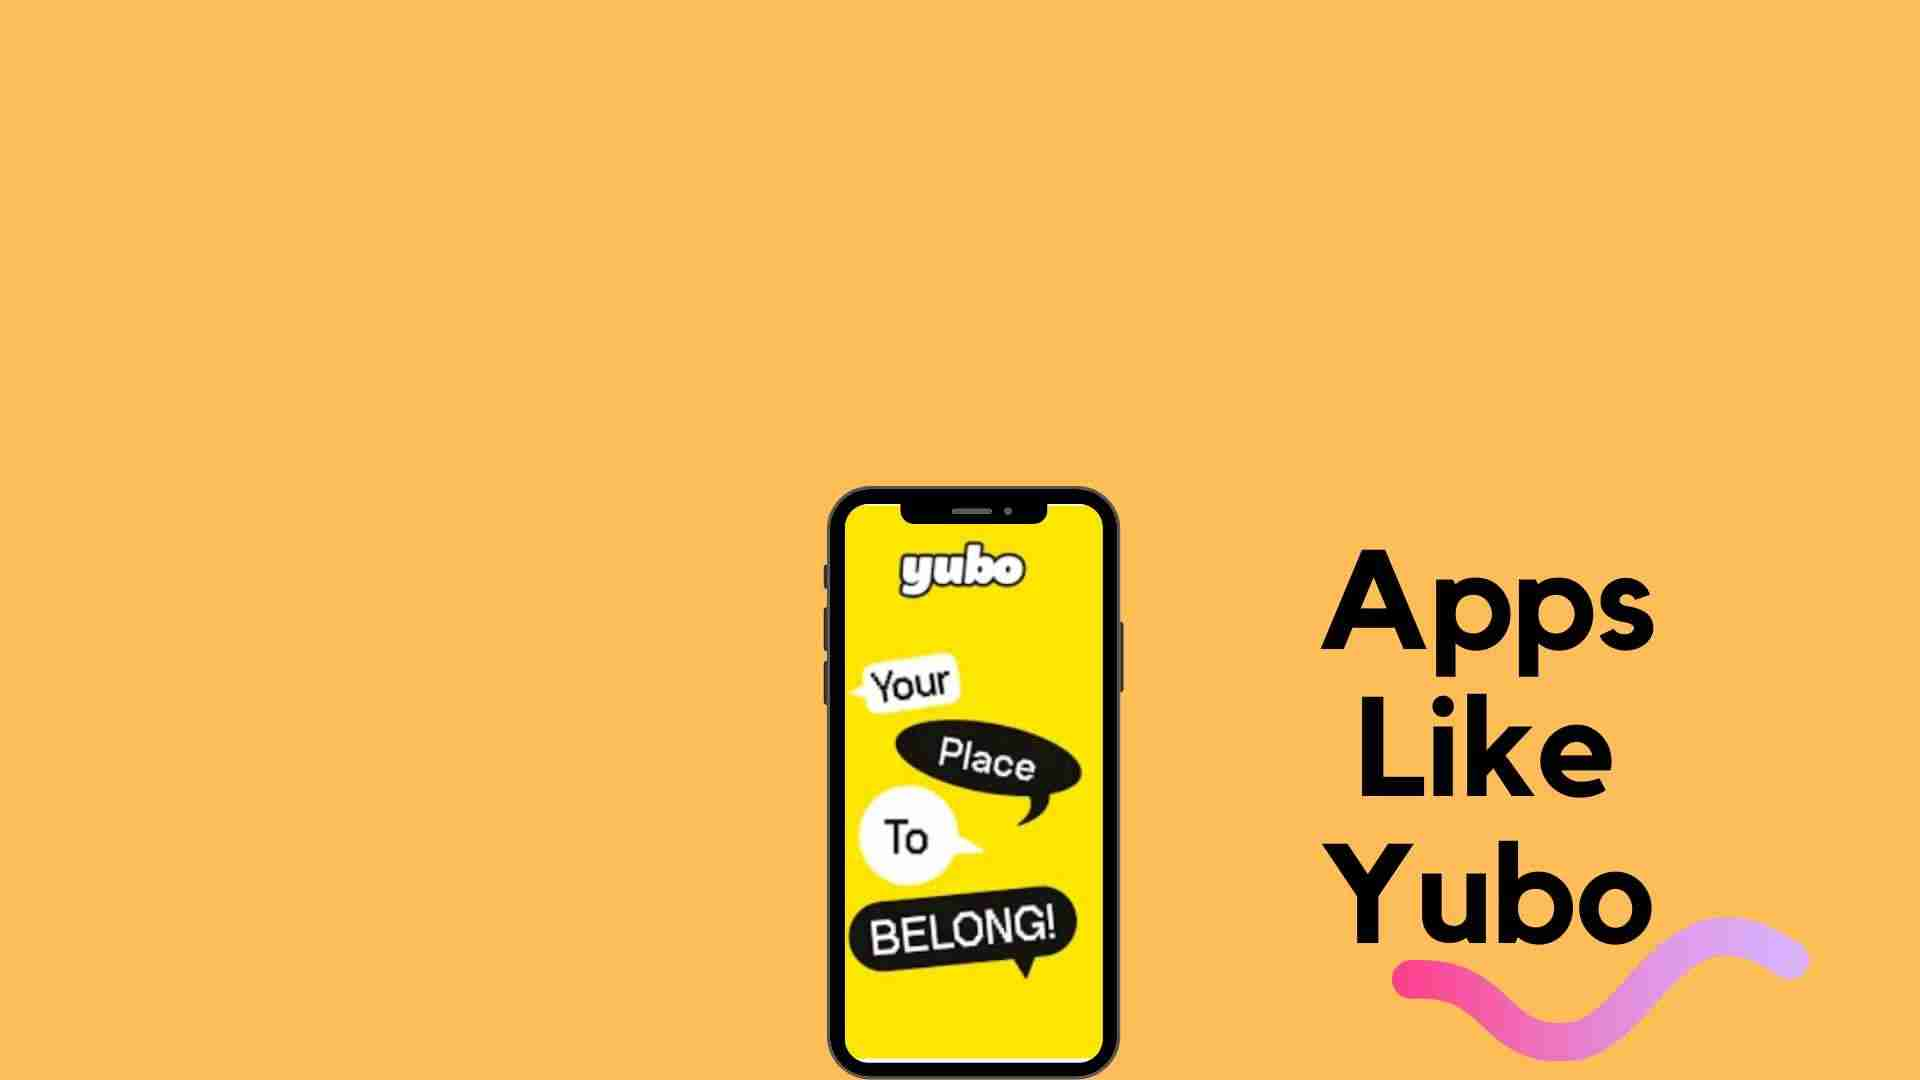 9 Apps like Yubo for live video streaming with friends